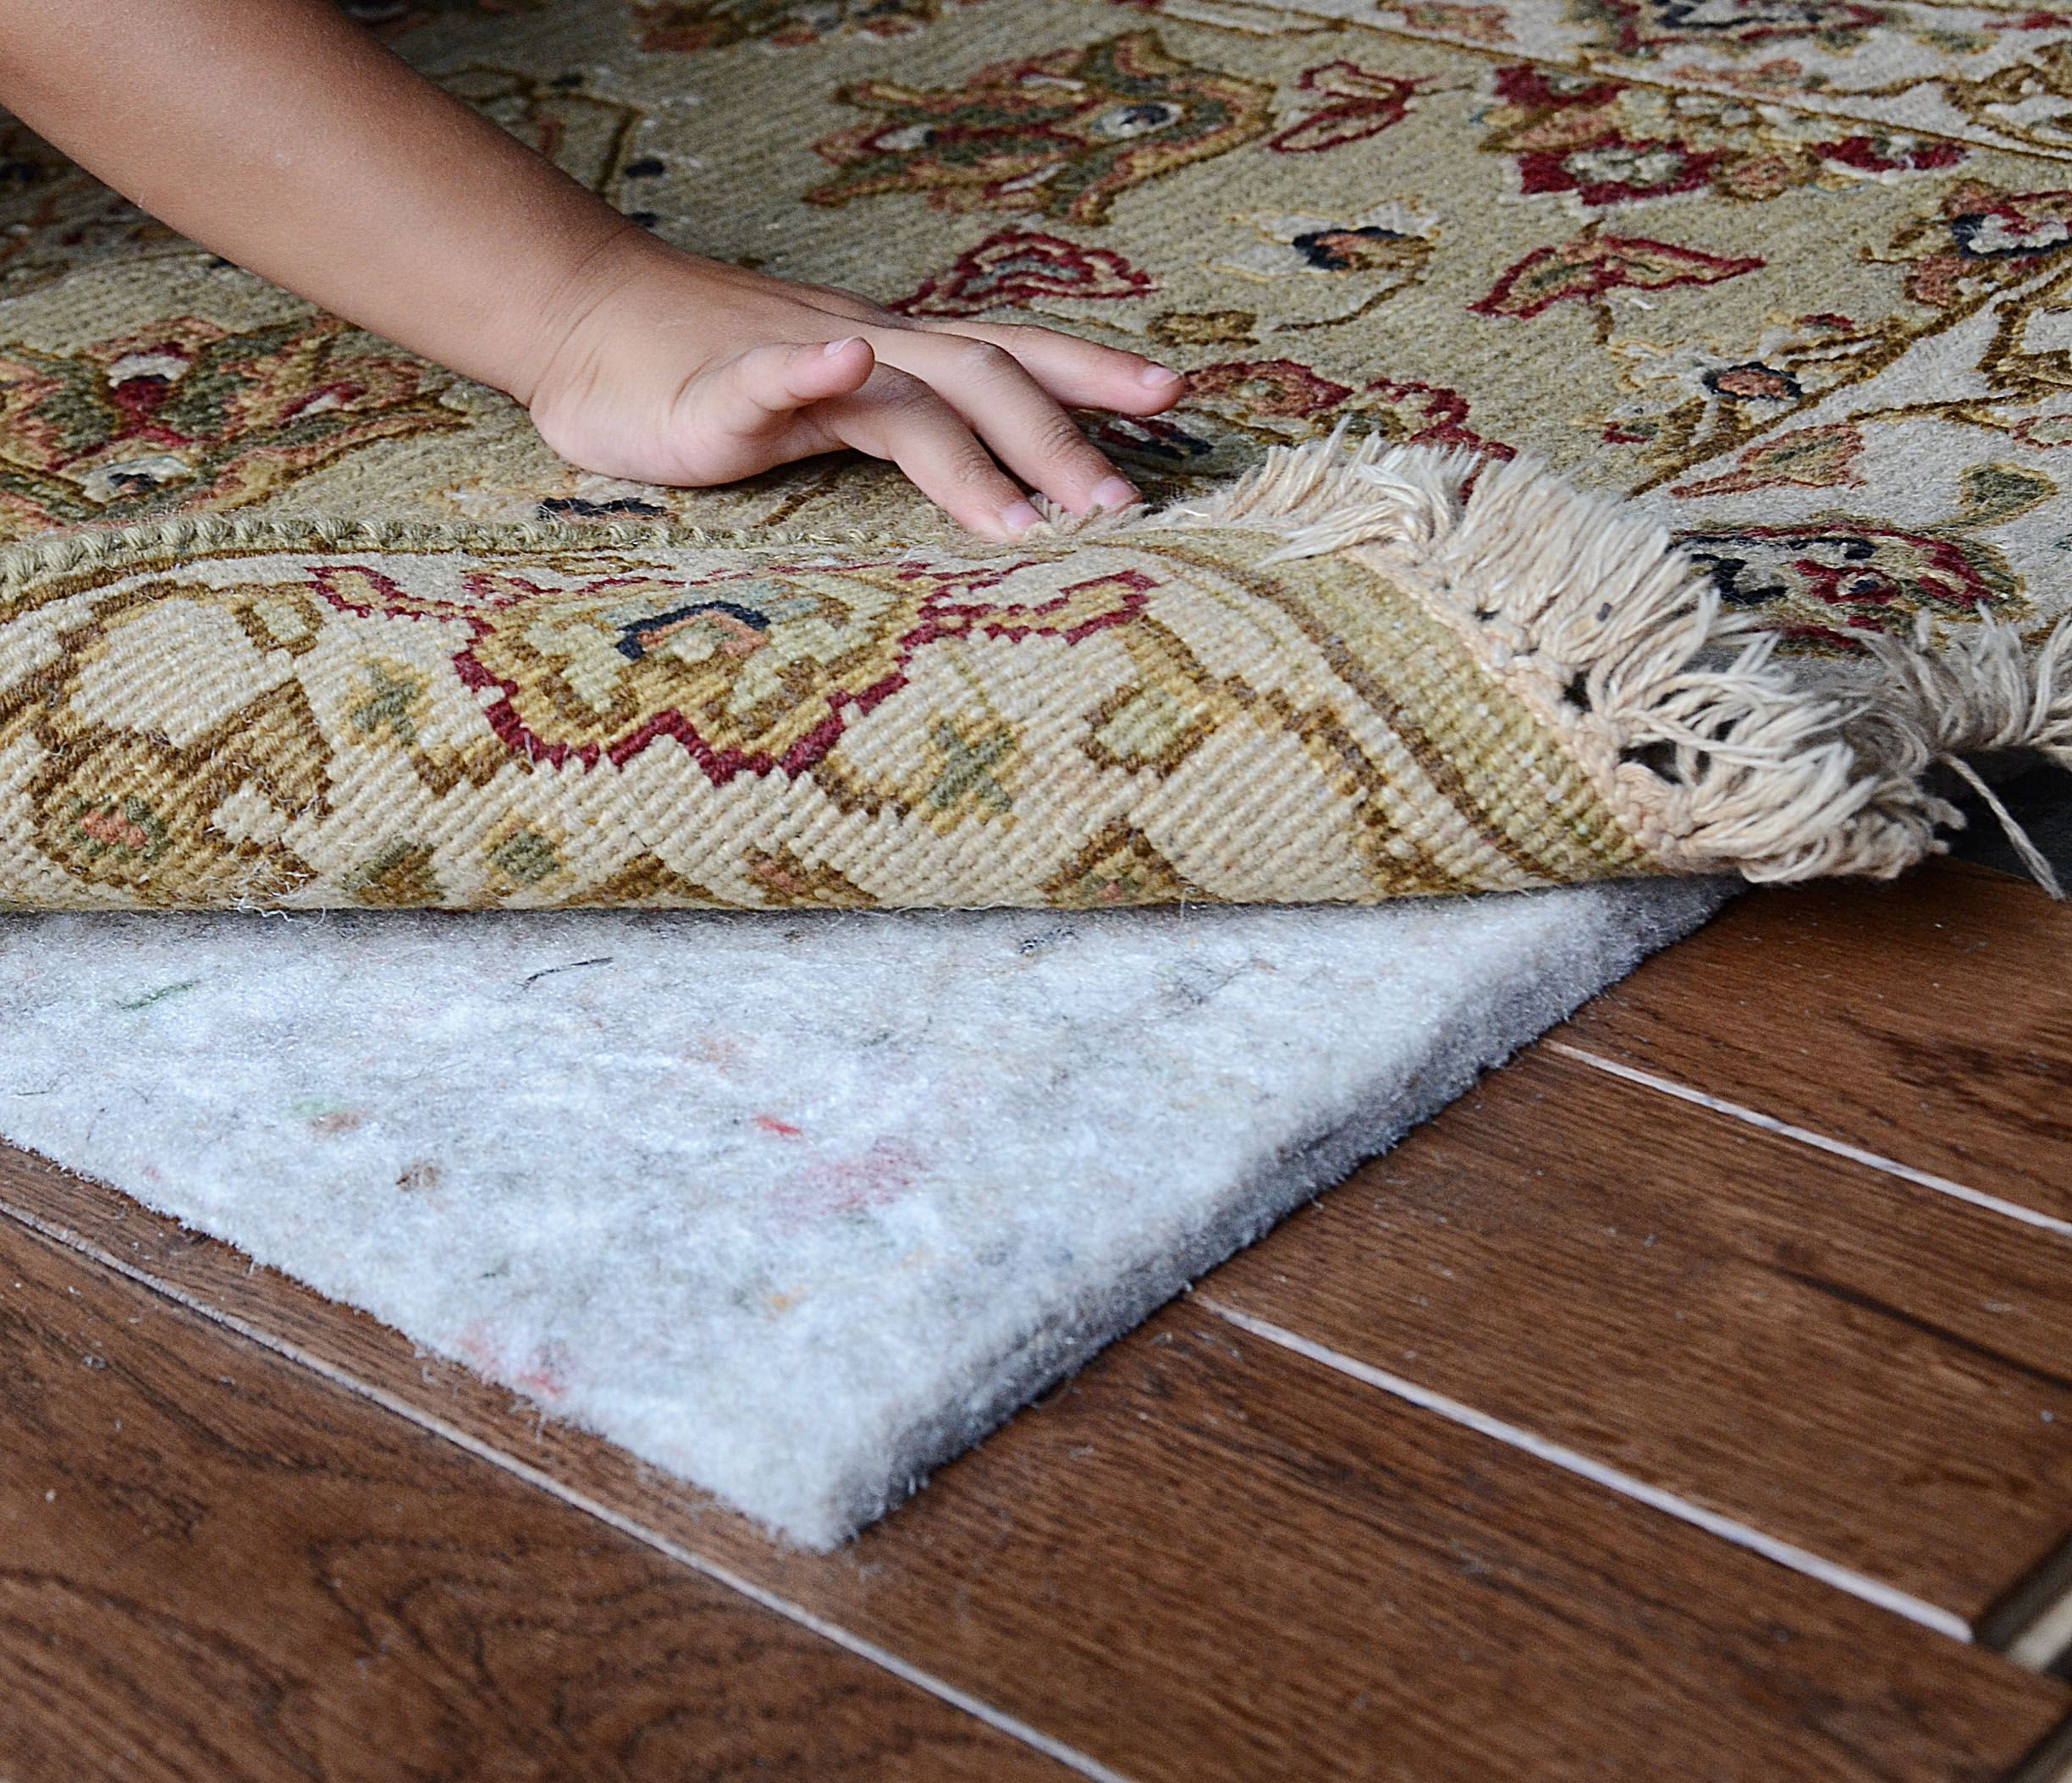 Mohawk Felt Rug Pad Is Made By Industries To Use Under Area Rugs It Protects The And Floor From Damage Adds Comfort